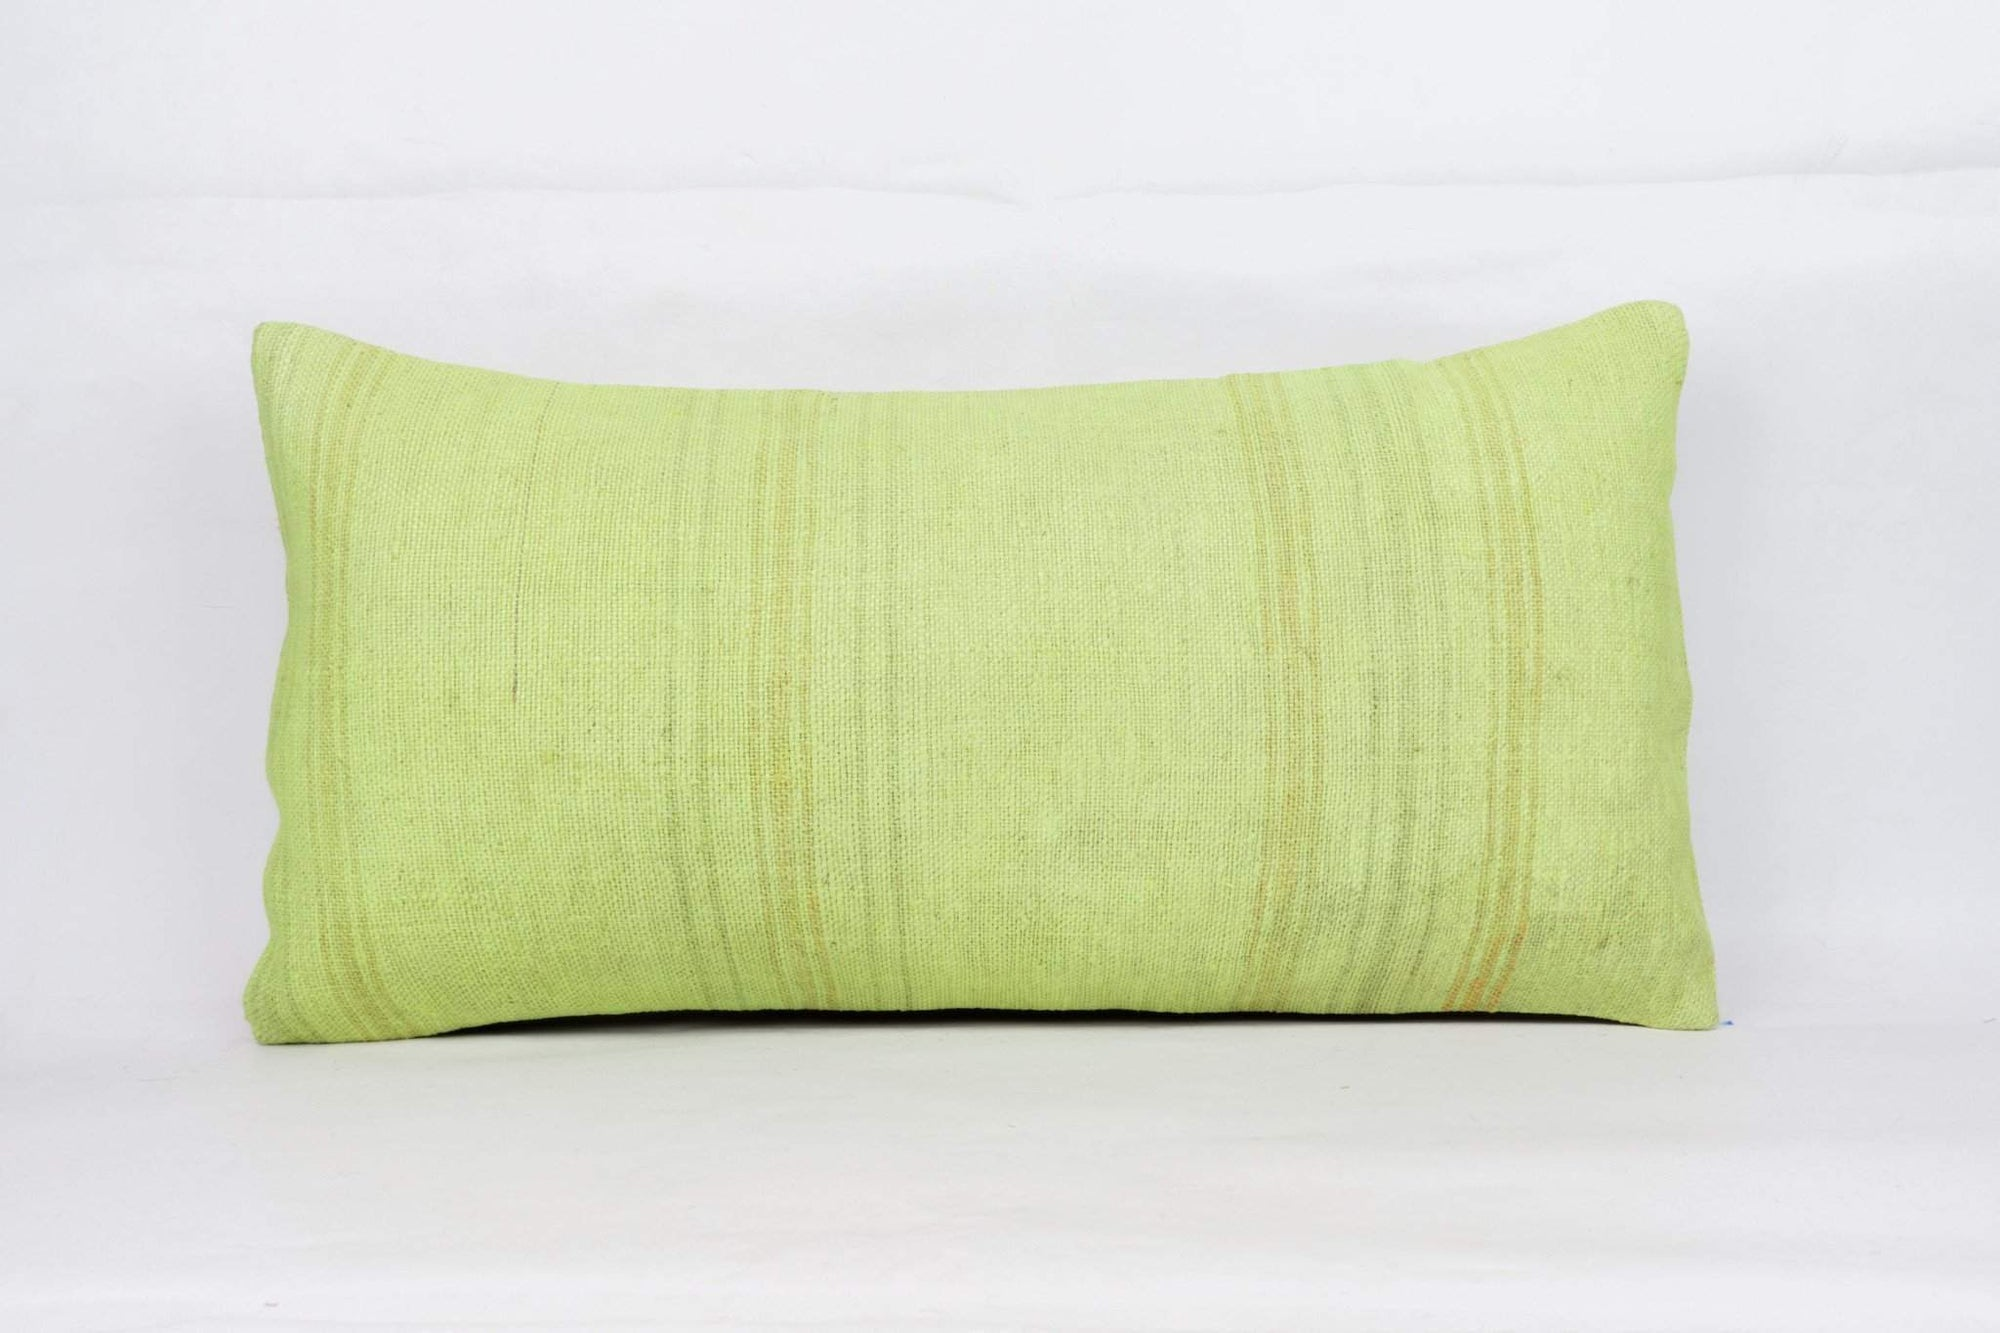 Plain Green Kilim Pillow Cover 12x24 4127 - kilimpillowstore  - 1